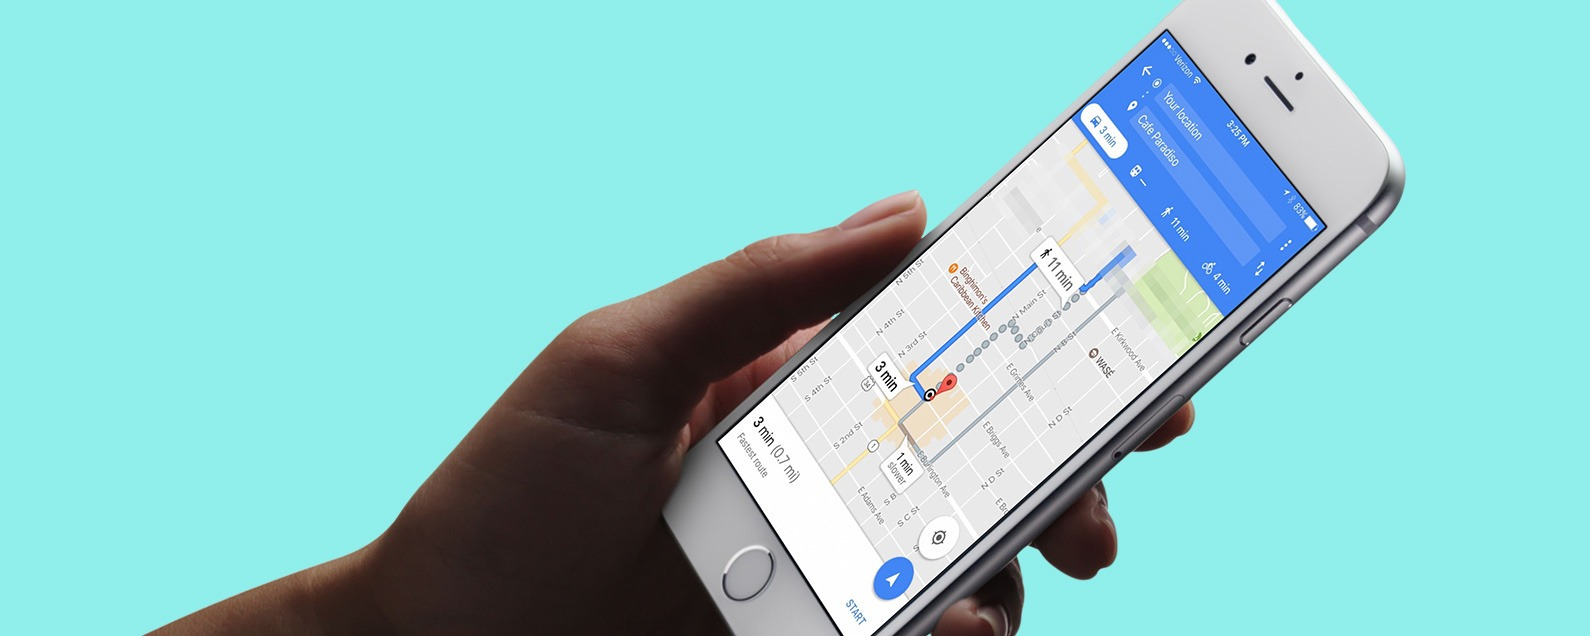 How To Get Bicycle Directions On Iphone Iphonelife